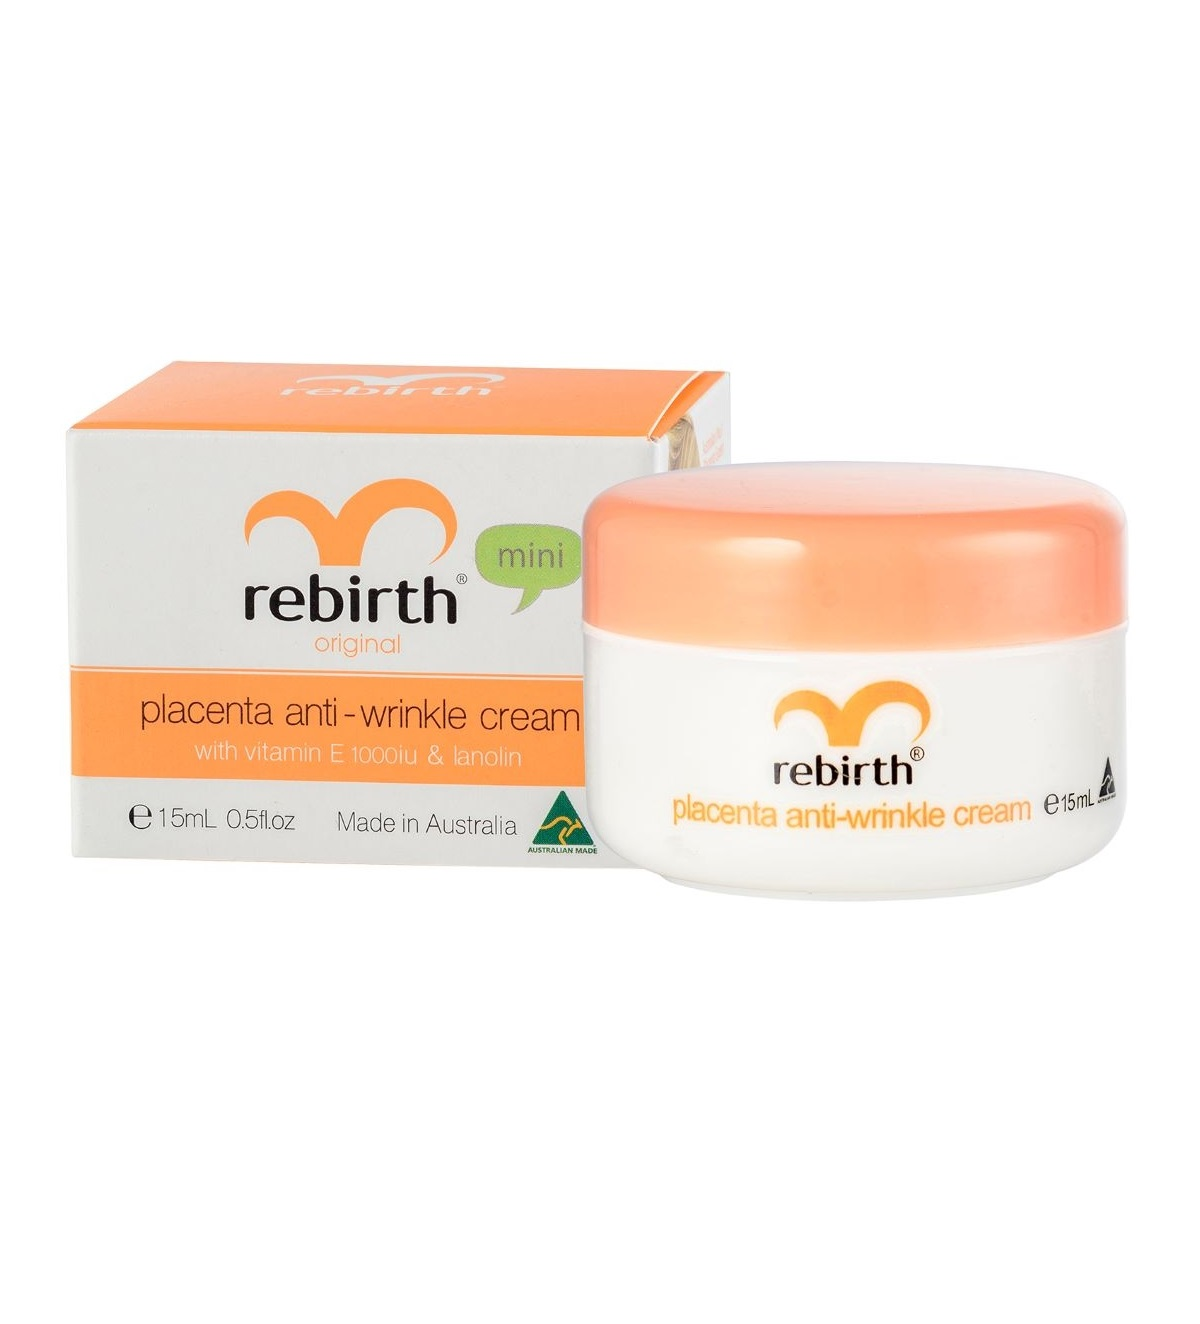 Крем с экстрактом плаценты, витамином Е и ланолином Rebirth Placenta Anti-Wrinkle Cream